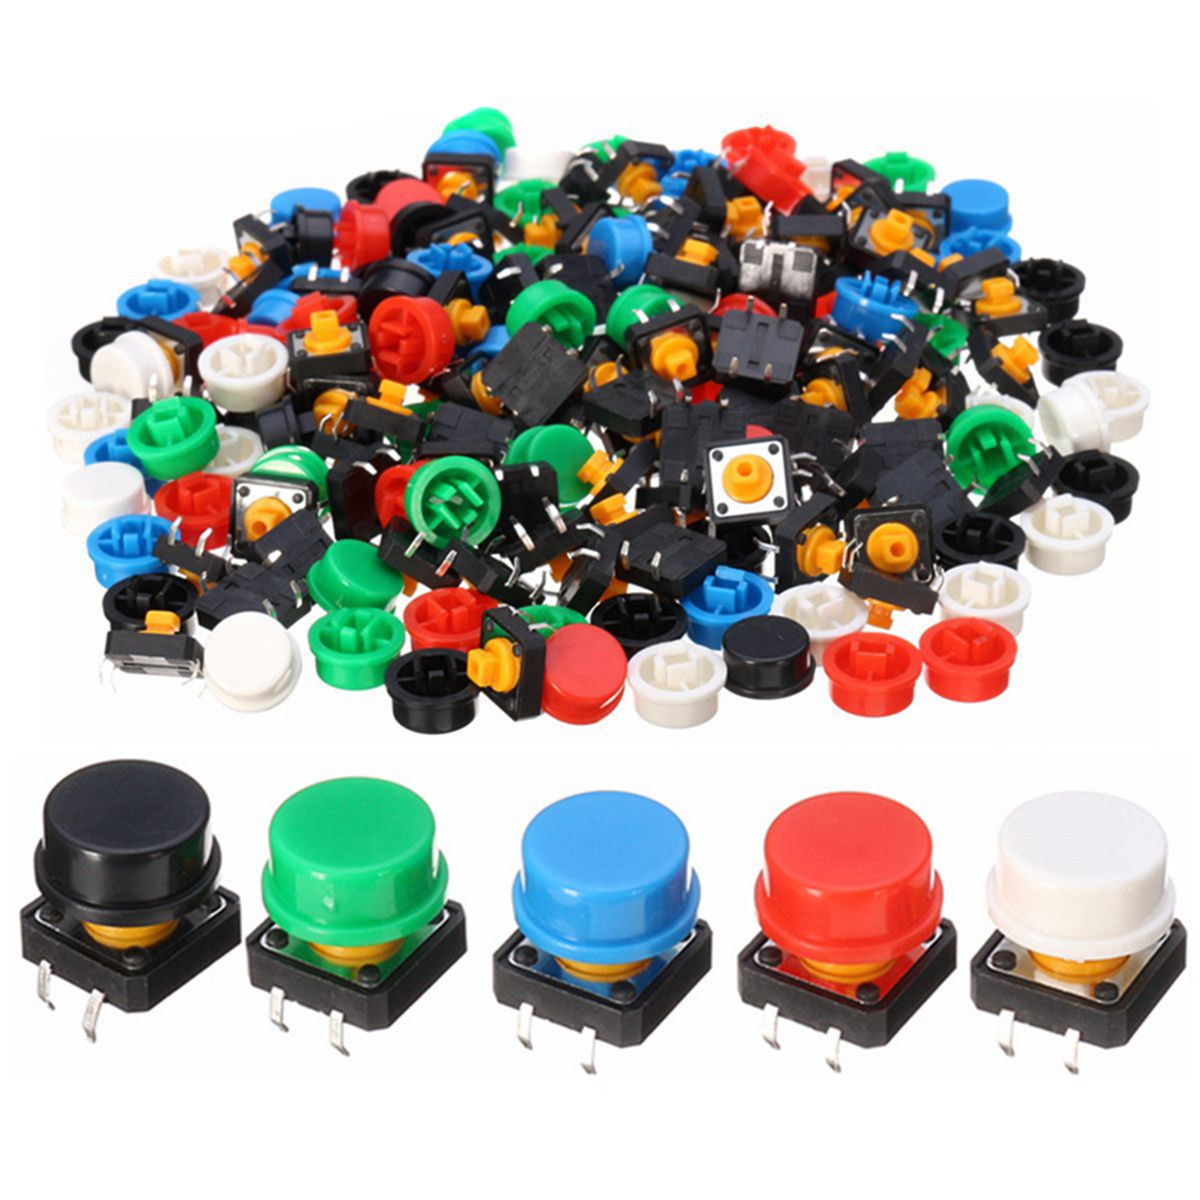 100pcs-plastic-tactile-switch-pcb-tact-push-button-momentary-switch-4-pins-5-color-button-cap-12-12-73mm-mayitr